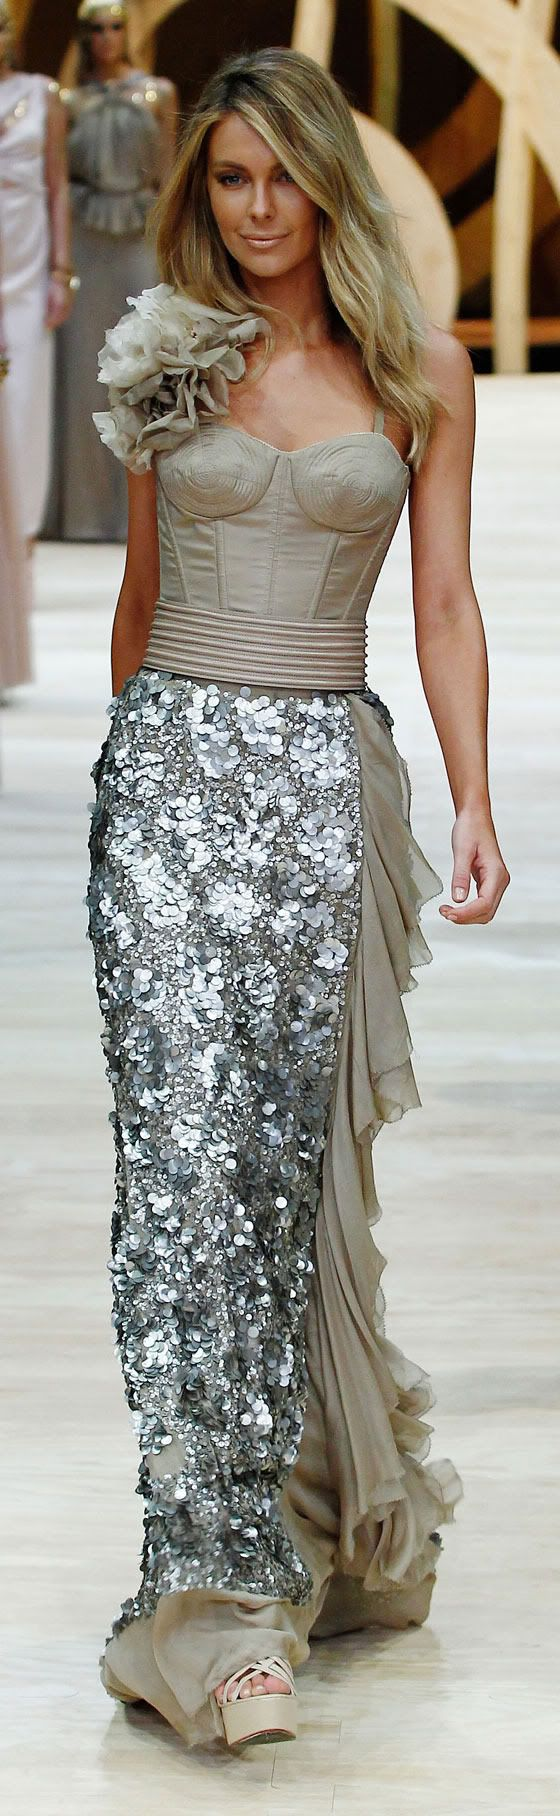 I SOOO want this dress!!!!!!! Can someone say Gorgeous?!